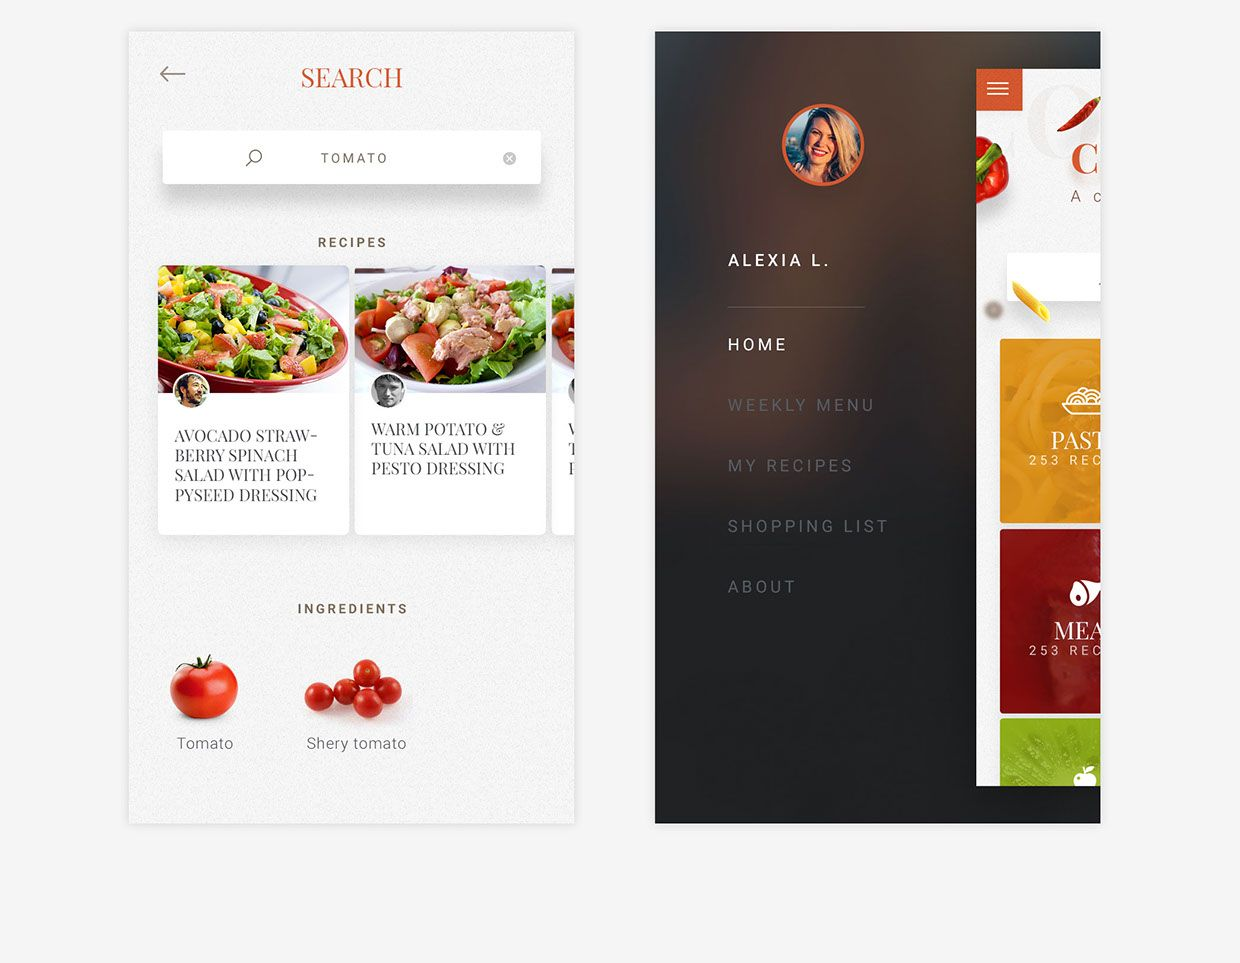 Free cooking recipe app template on behance ui food free cooking recipe app template on behance forumfinder Image collections